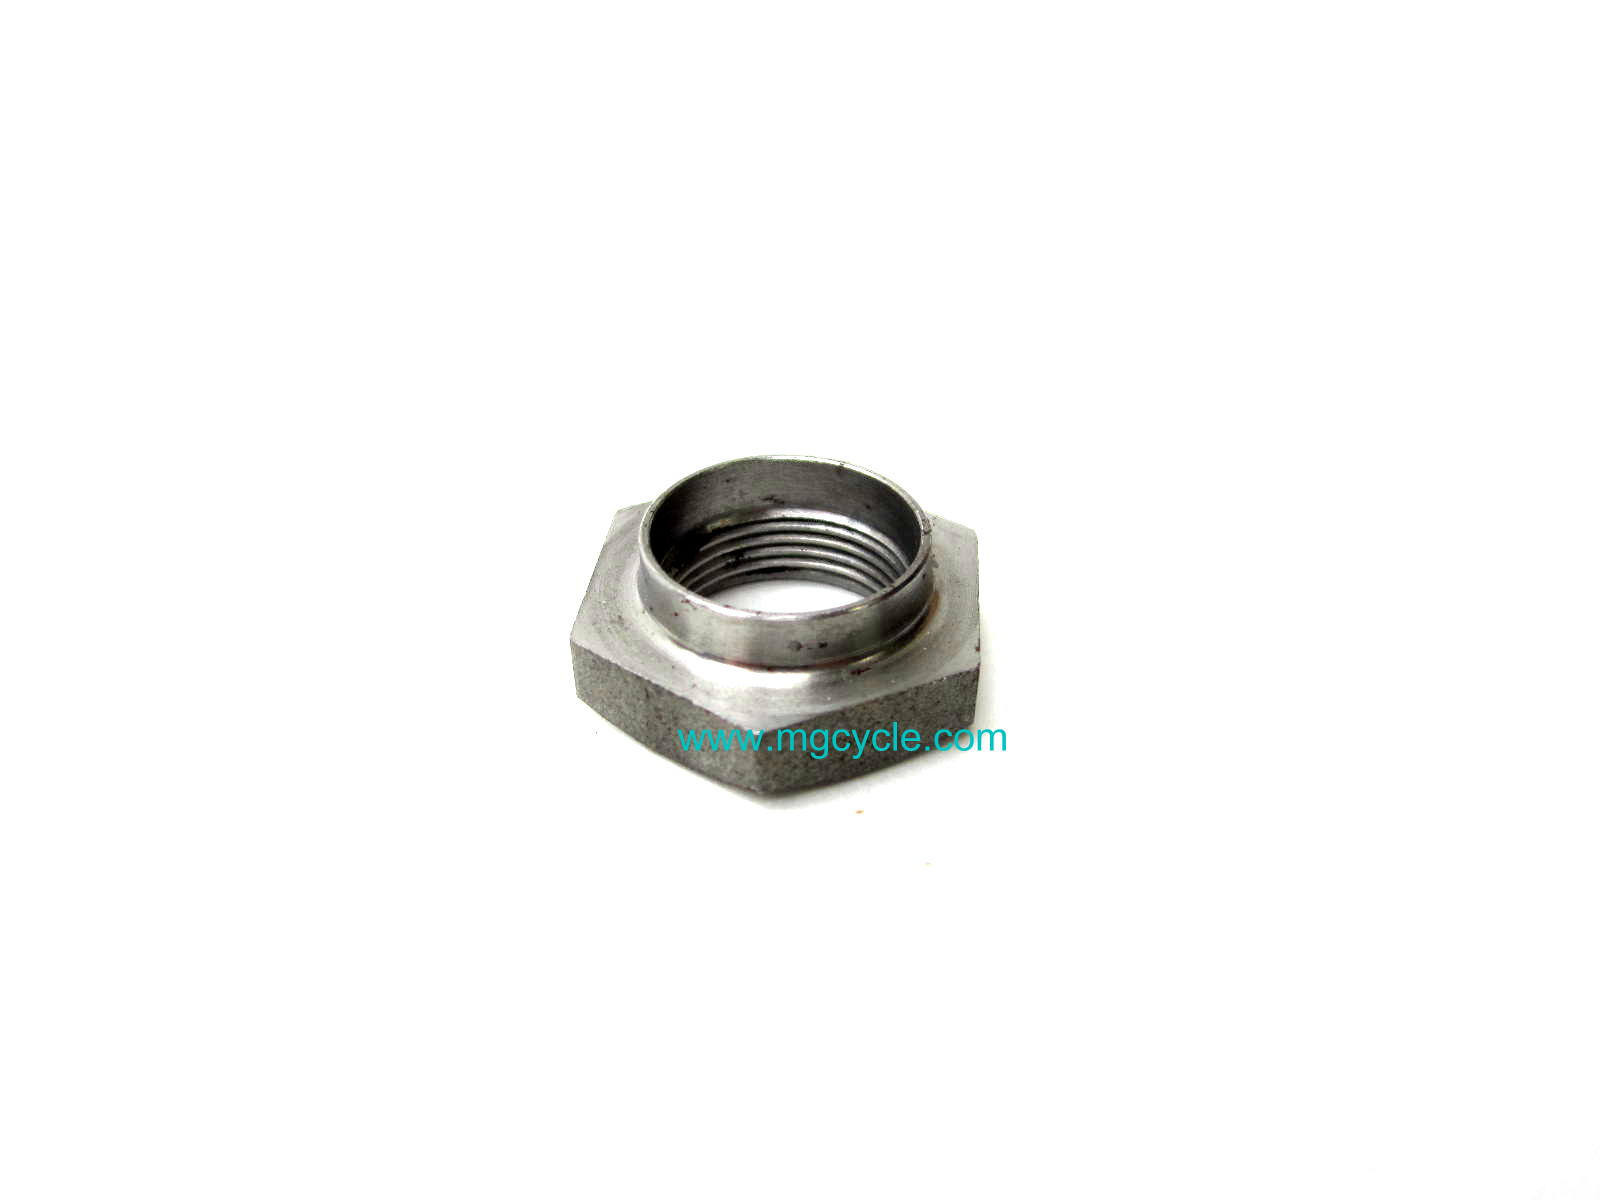 Layshaft nut, left hand thread GU14217410